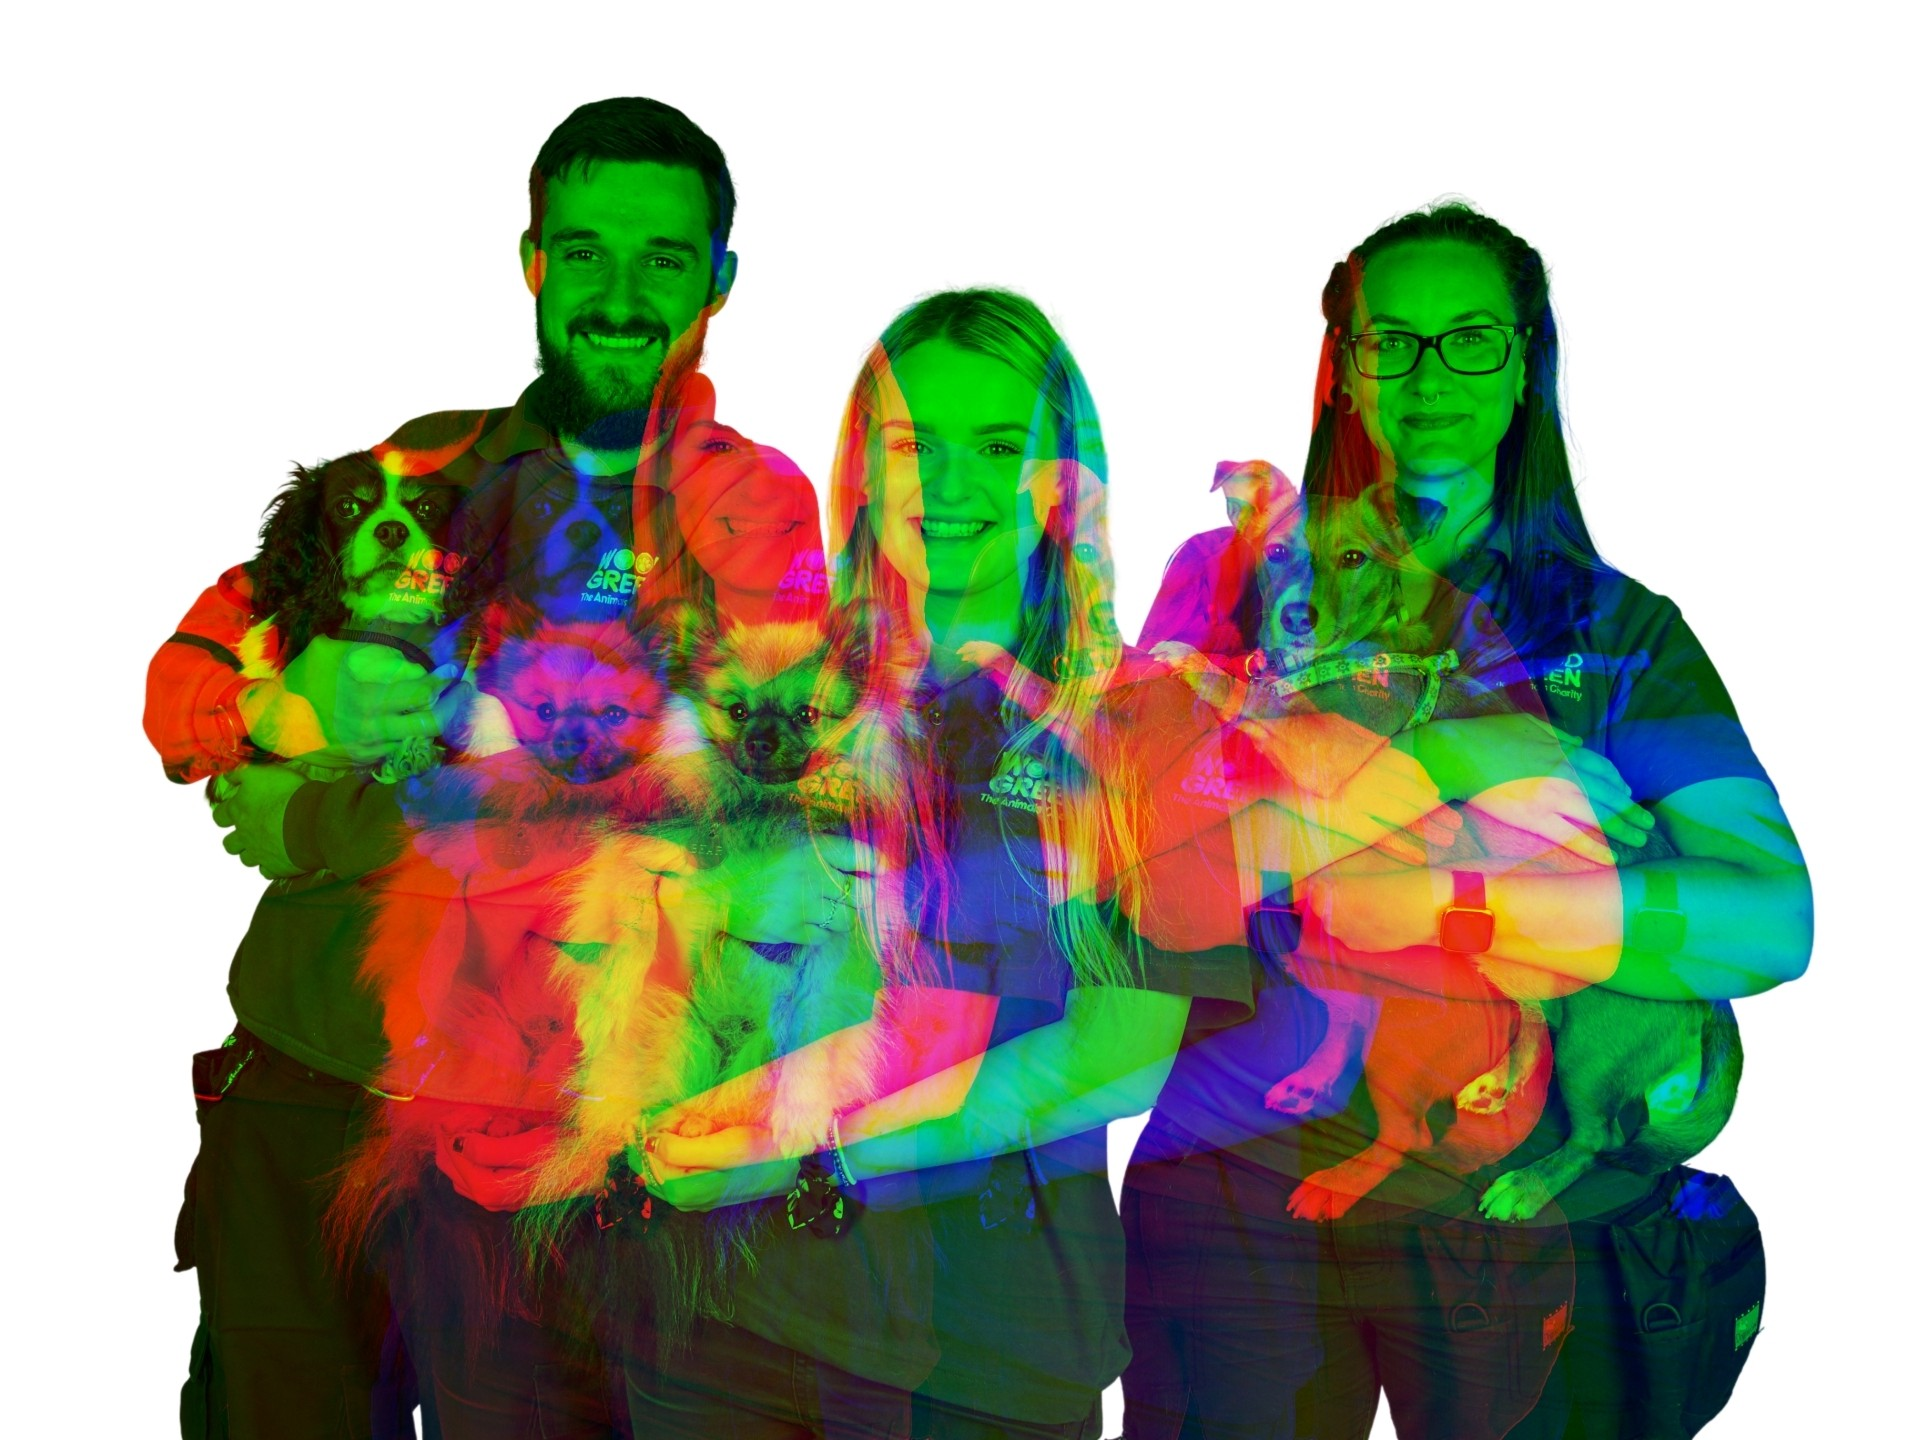 A colorful double exposure of three people, each holding a dog.